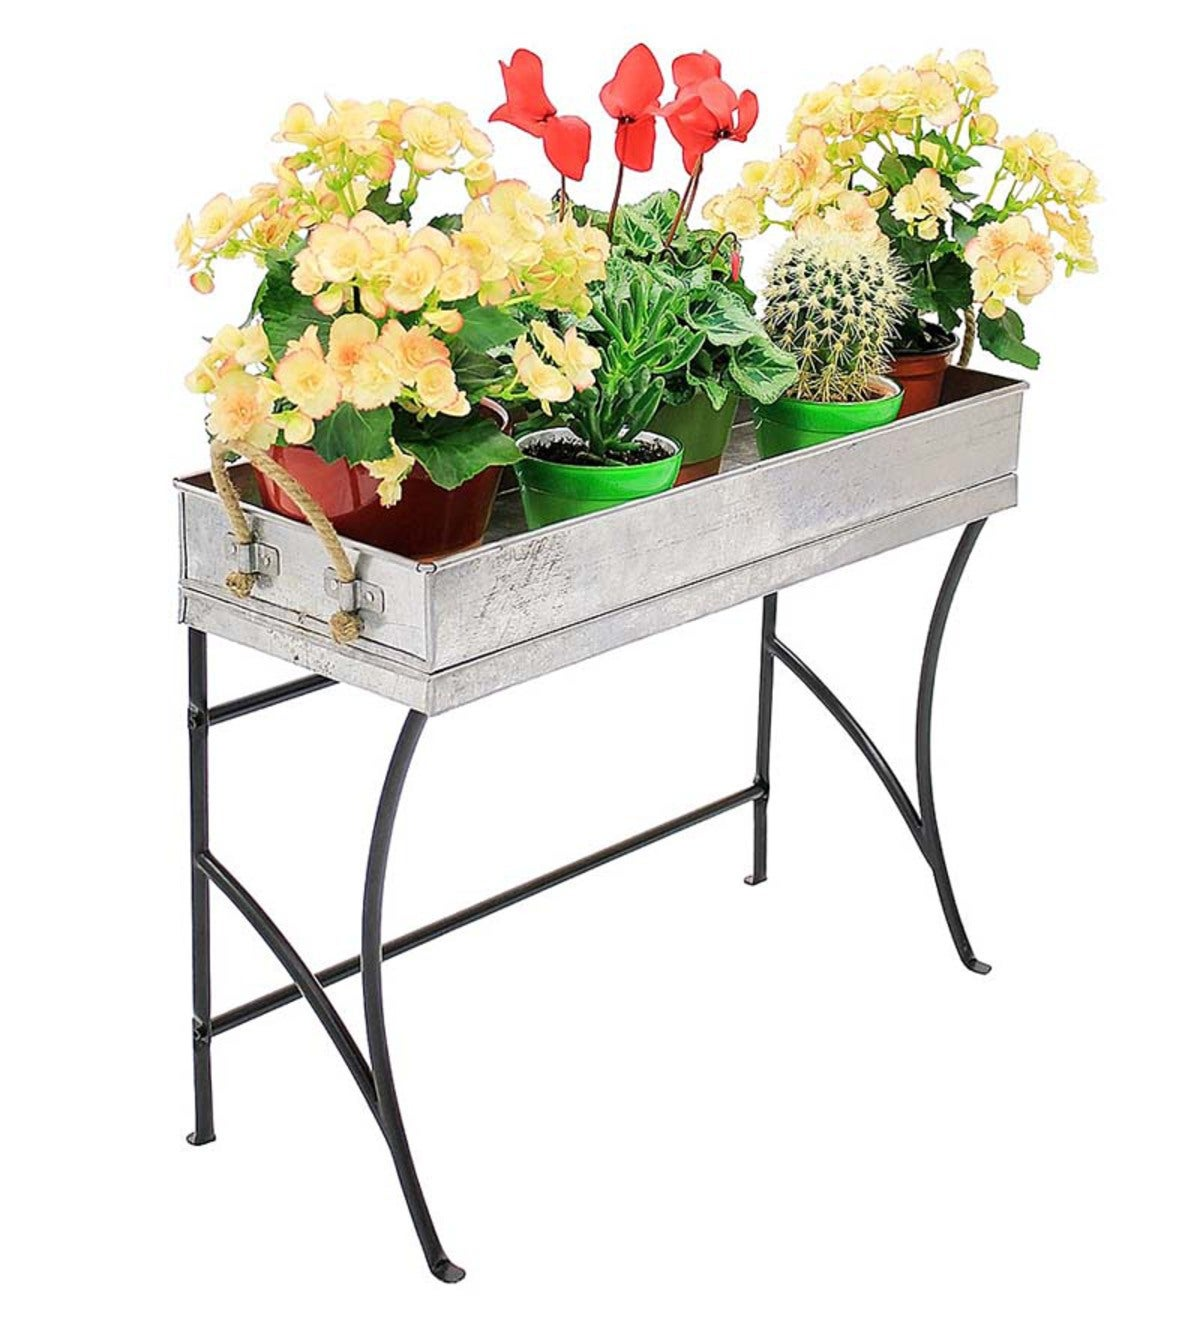 Galvanized Steel Planter with Iron Plant Stand